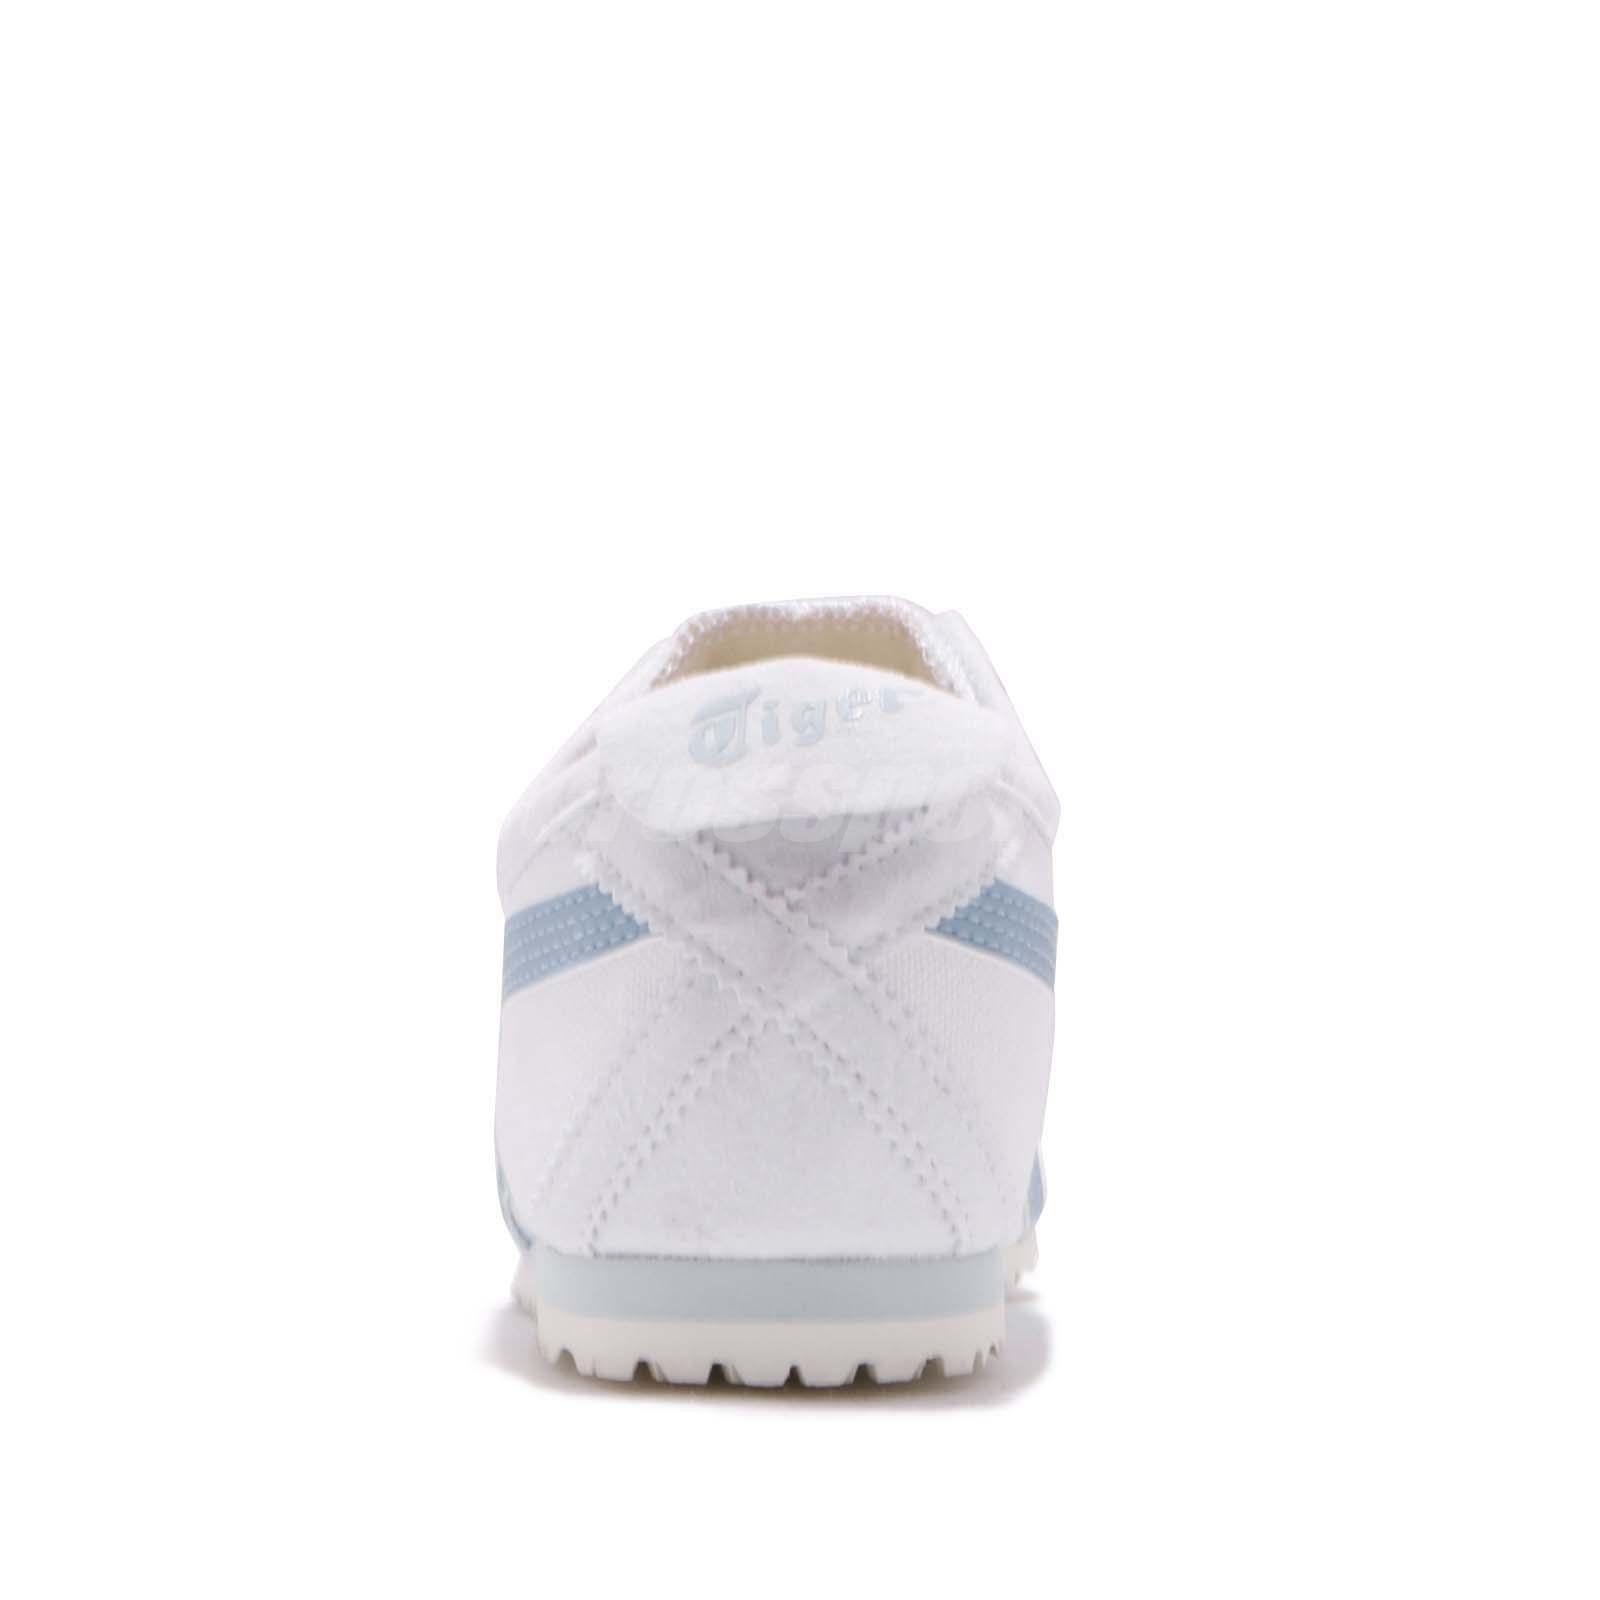 best sneakers e92c0 72b30 Details about Asics Mexico 66 Slip On White Blue Smoke Women Shoes Onitsuka  Tiger 1182A087-101